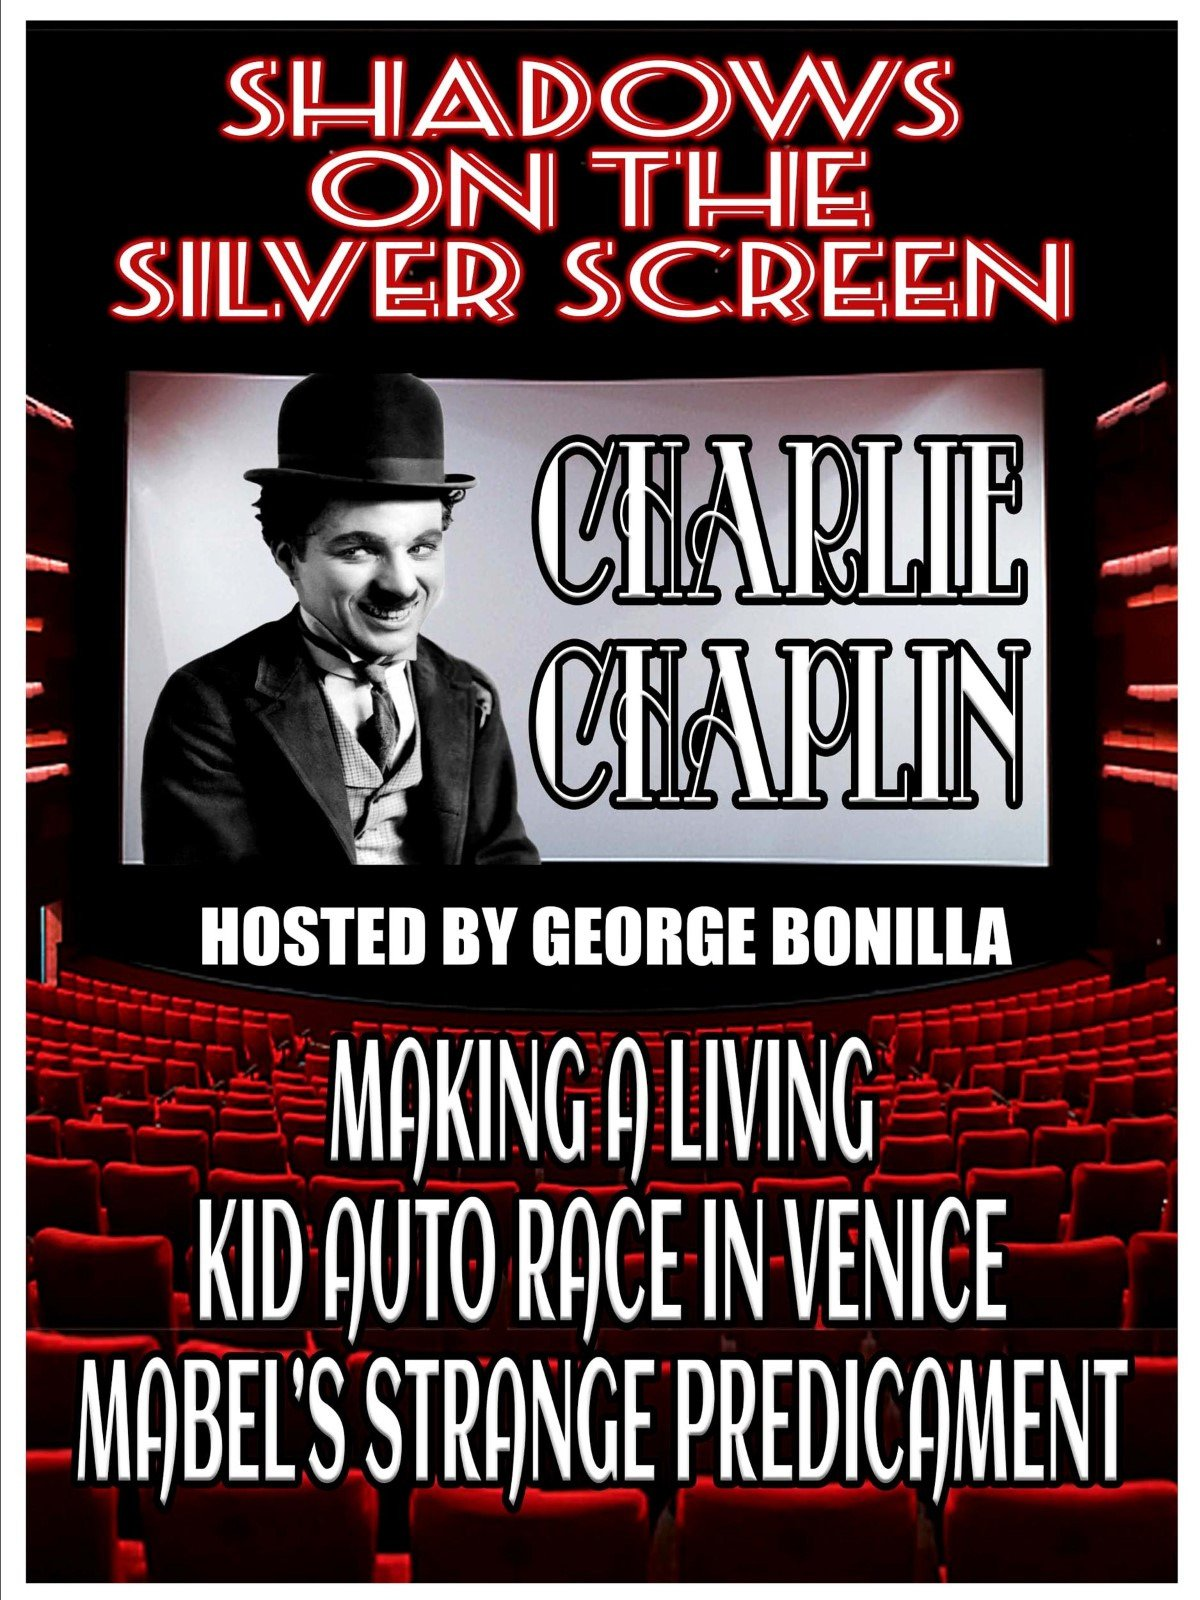 Shadows on the Silver Screen: Charlie Chaplin on Amazon Prime Video UK